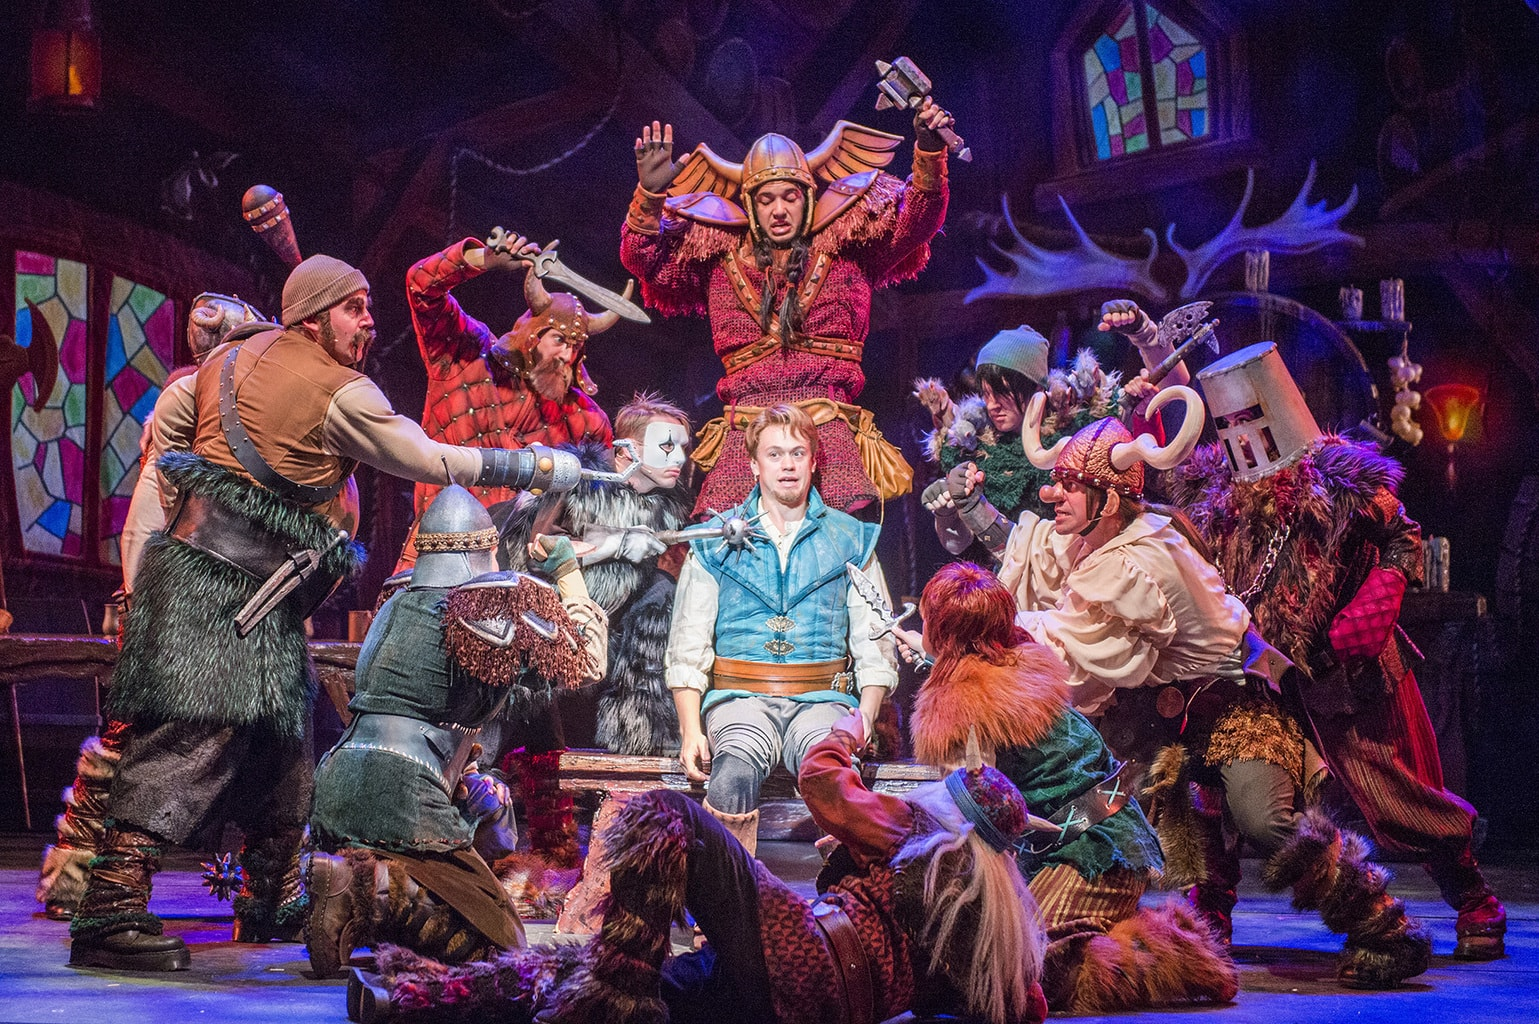 """""""Tangled: The Musical"""" is the newest original Disney Cruise Line stage spectacular. Presented exclusively aboard the Disney Magic, it combines a heartfelt story, an enchanting score and lavish production numbers to showcase the thrilling adventure of Rapunzel and Flynn Rider as they face ruffians, thugs and a budding romance on an exhilarating journey of self-discovery. (Ryan Wendler, photographer)"""